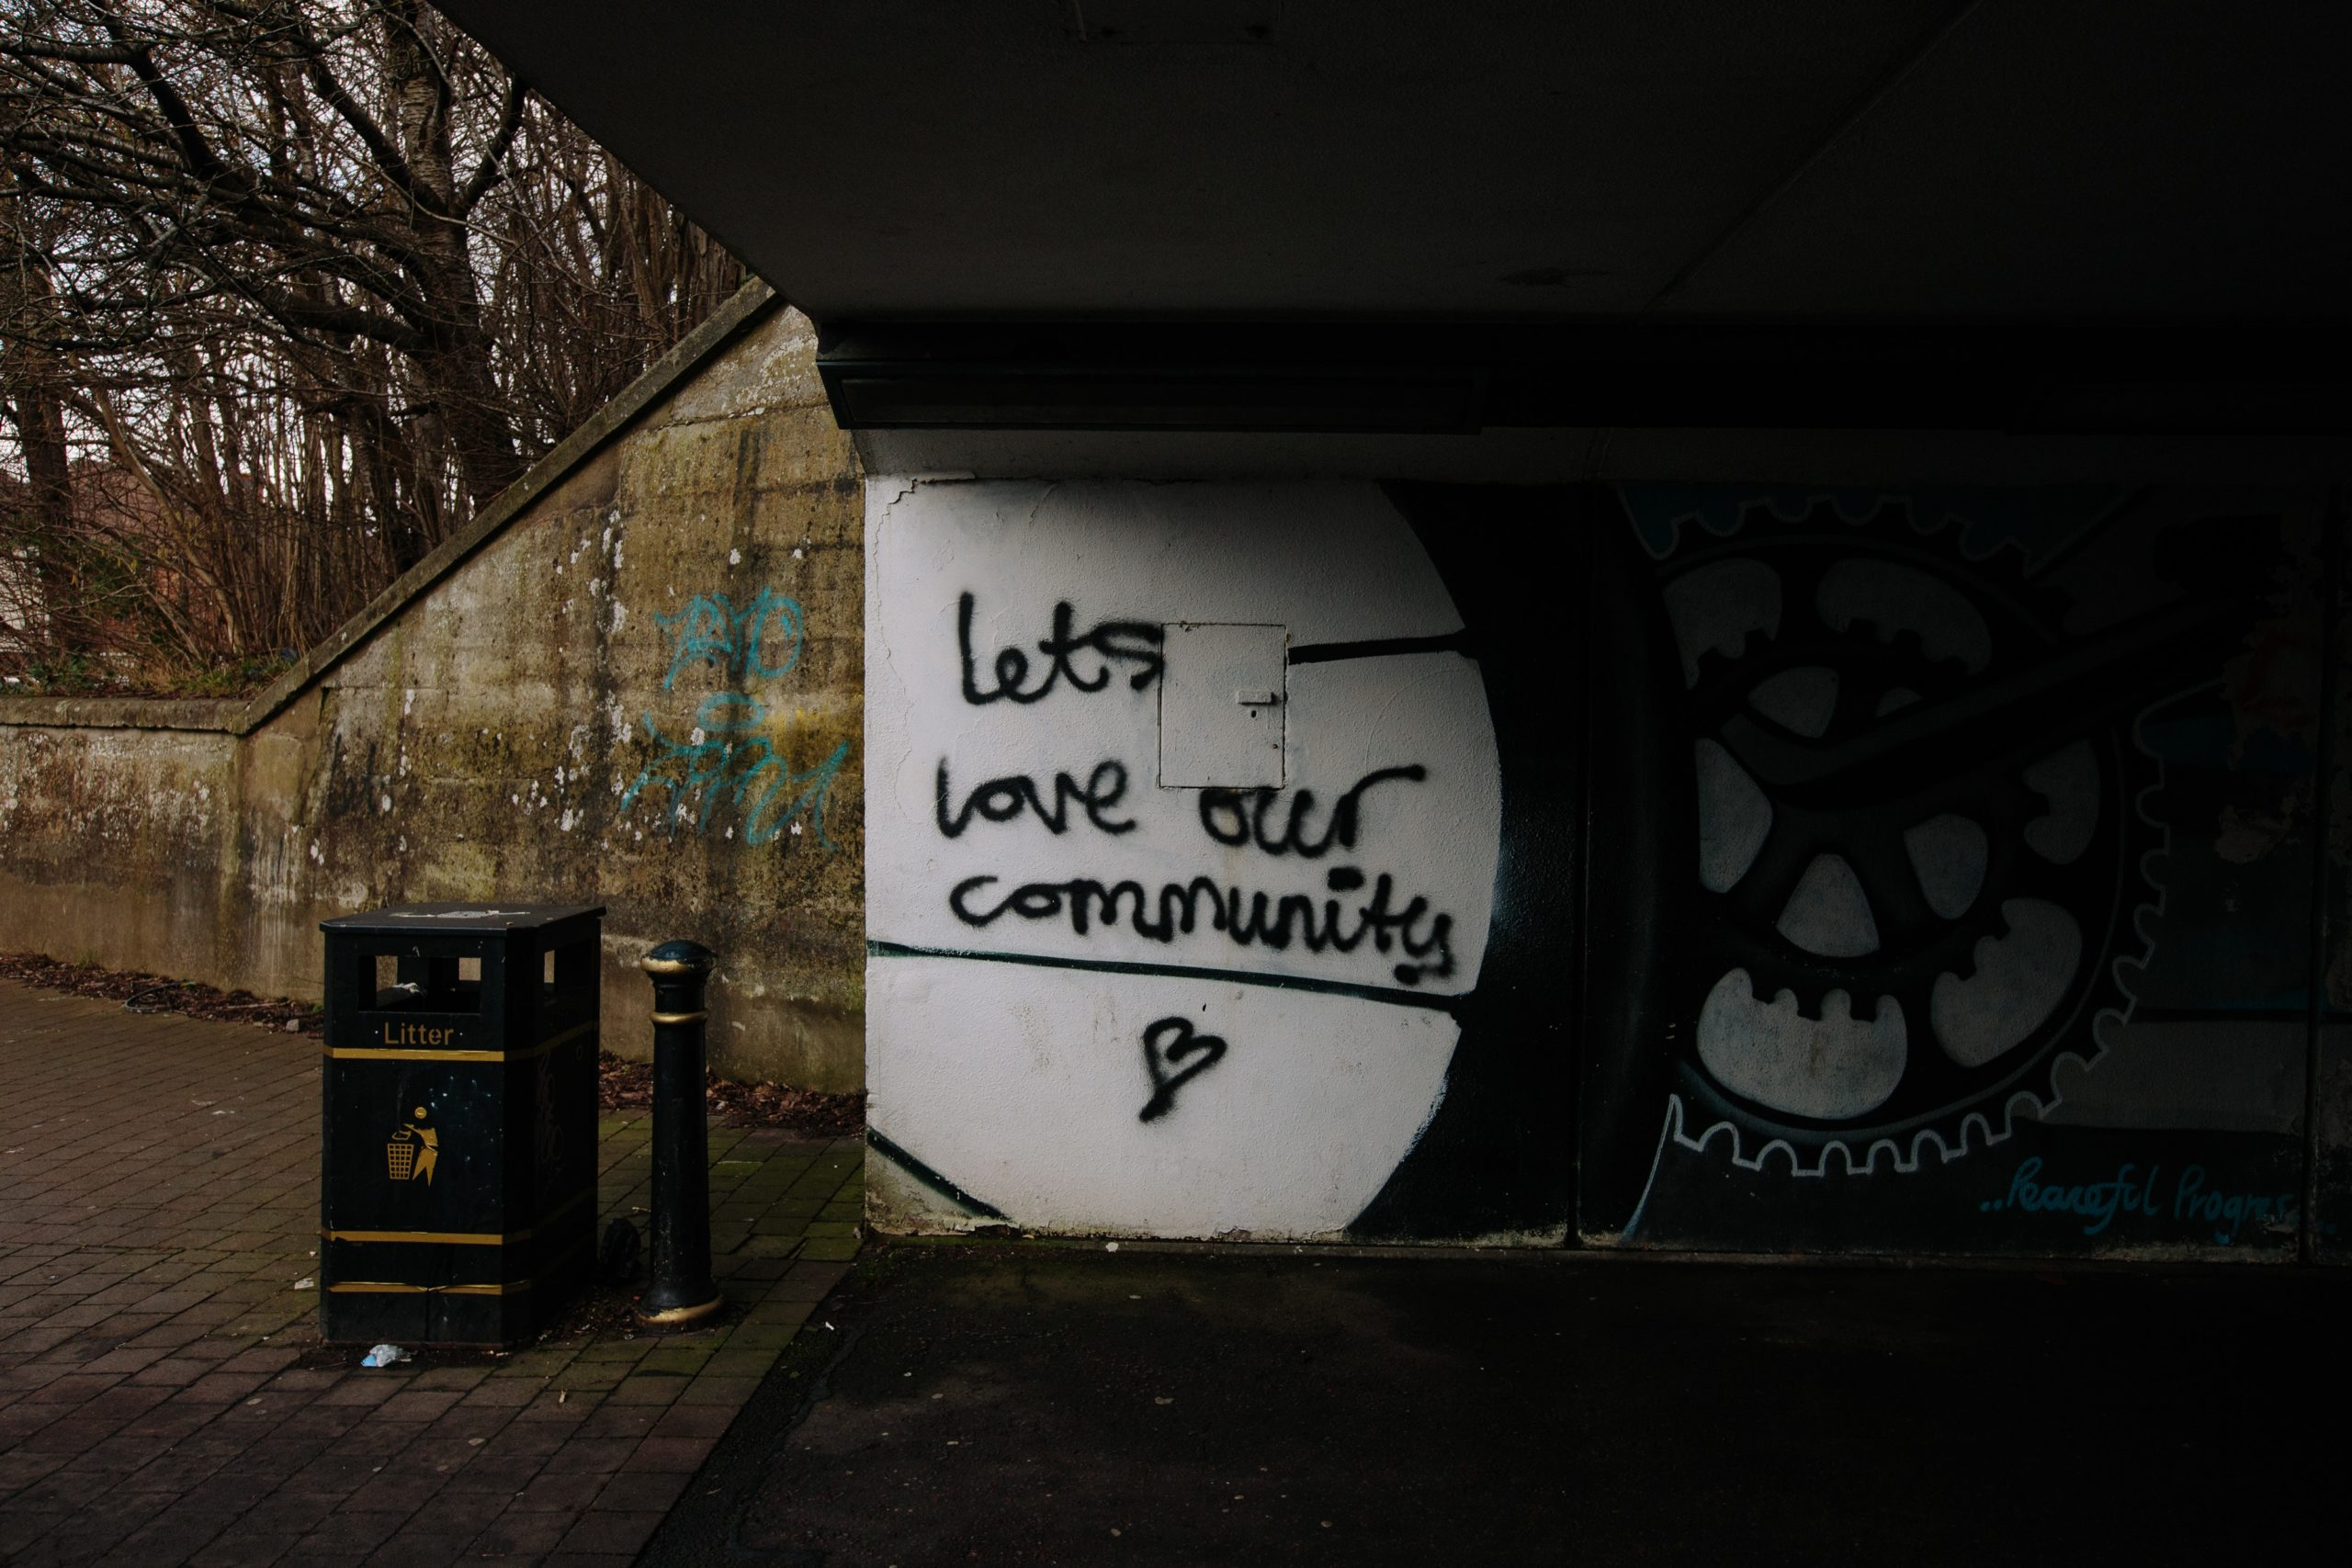 community together mural